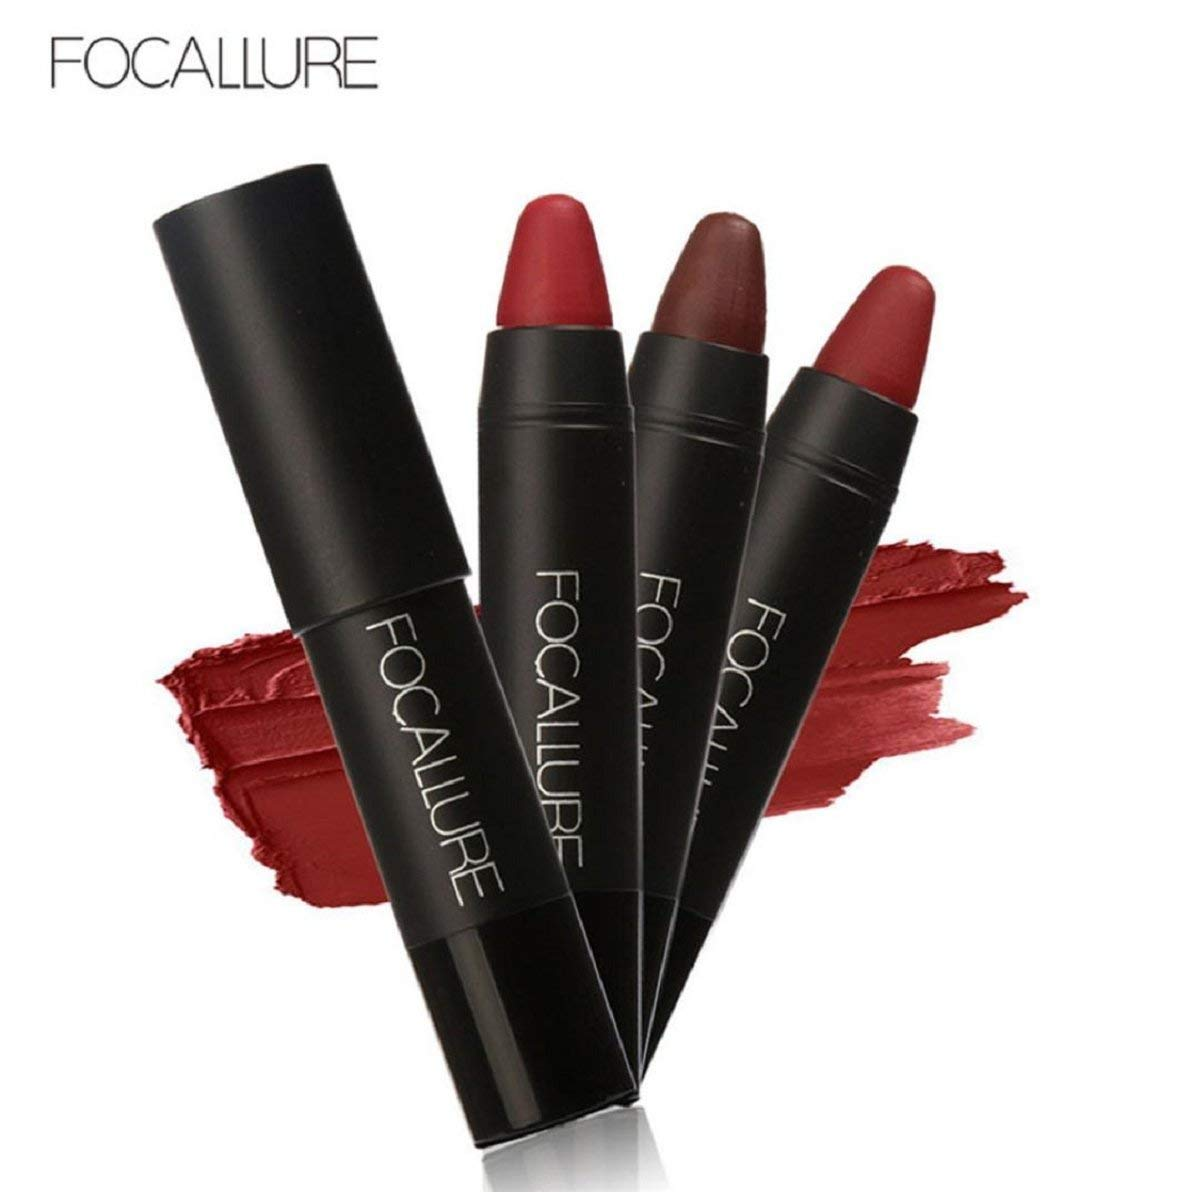 Lookatool Long-lasting Red Velvet Matte Lipstick Crayon Makeup Set